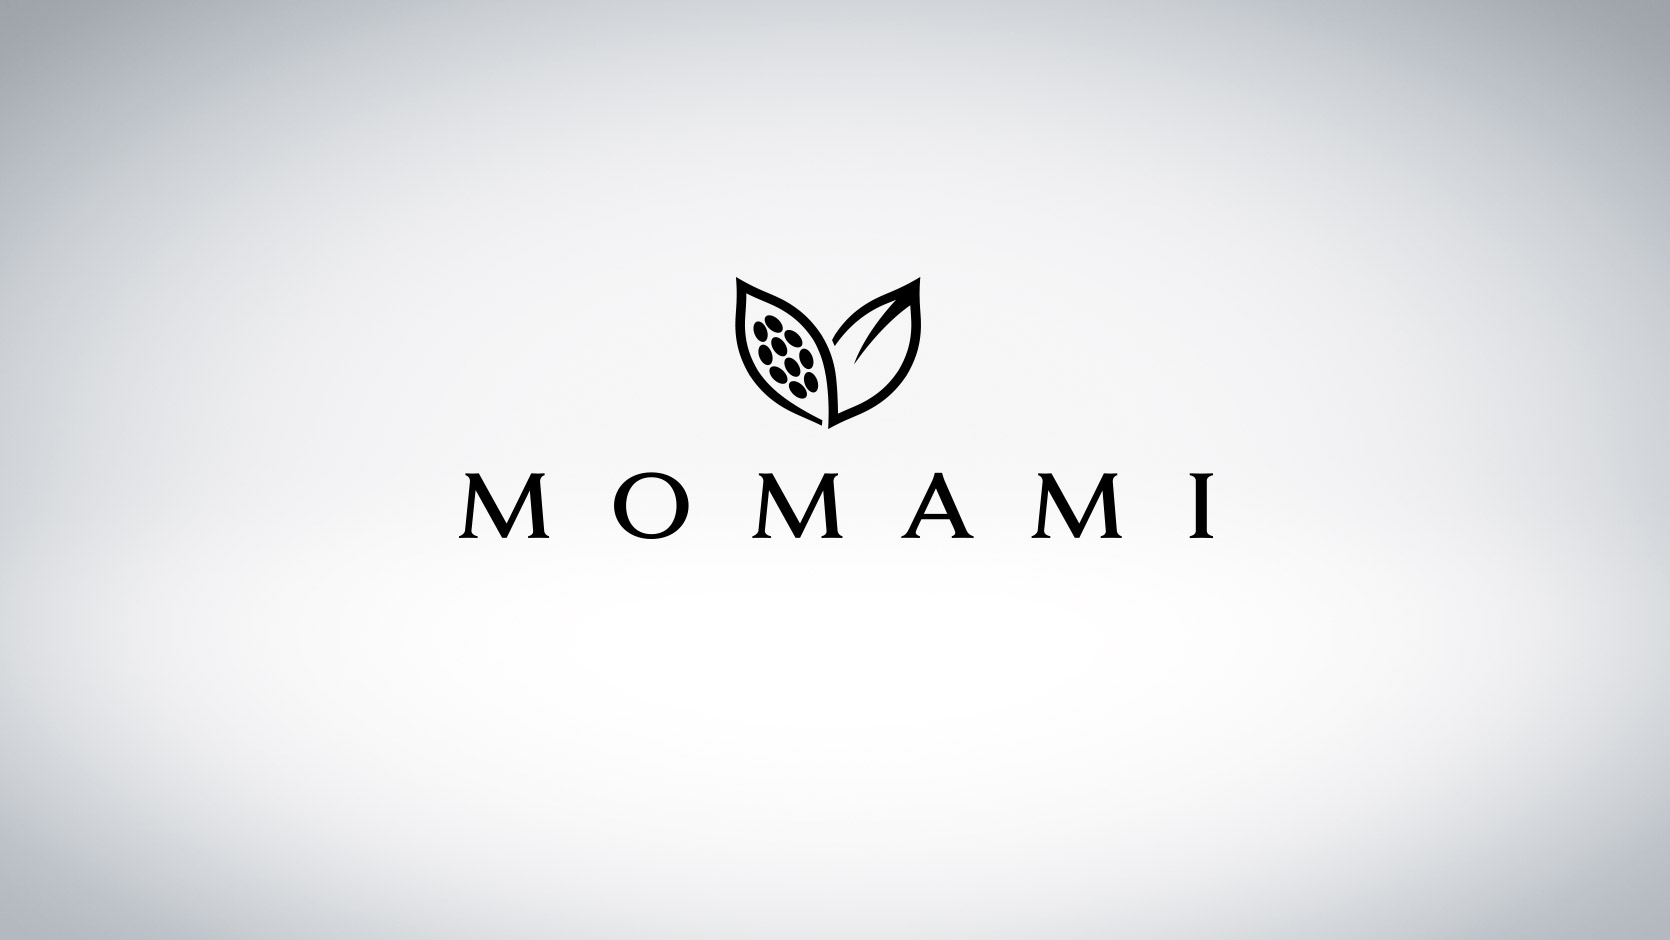 Momami